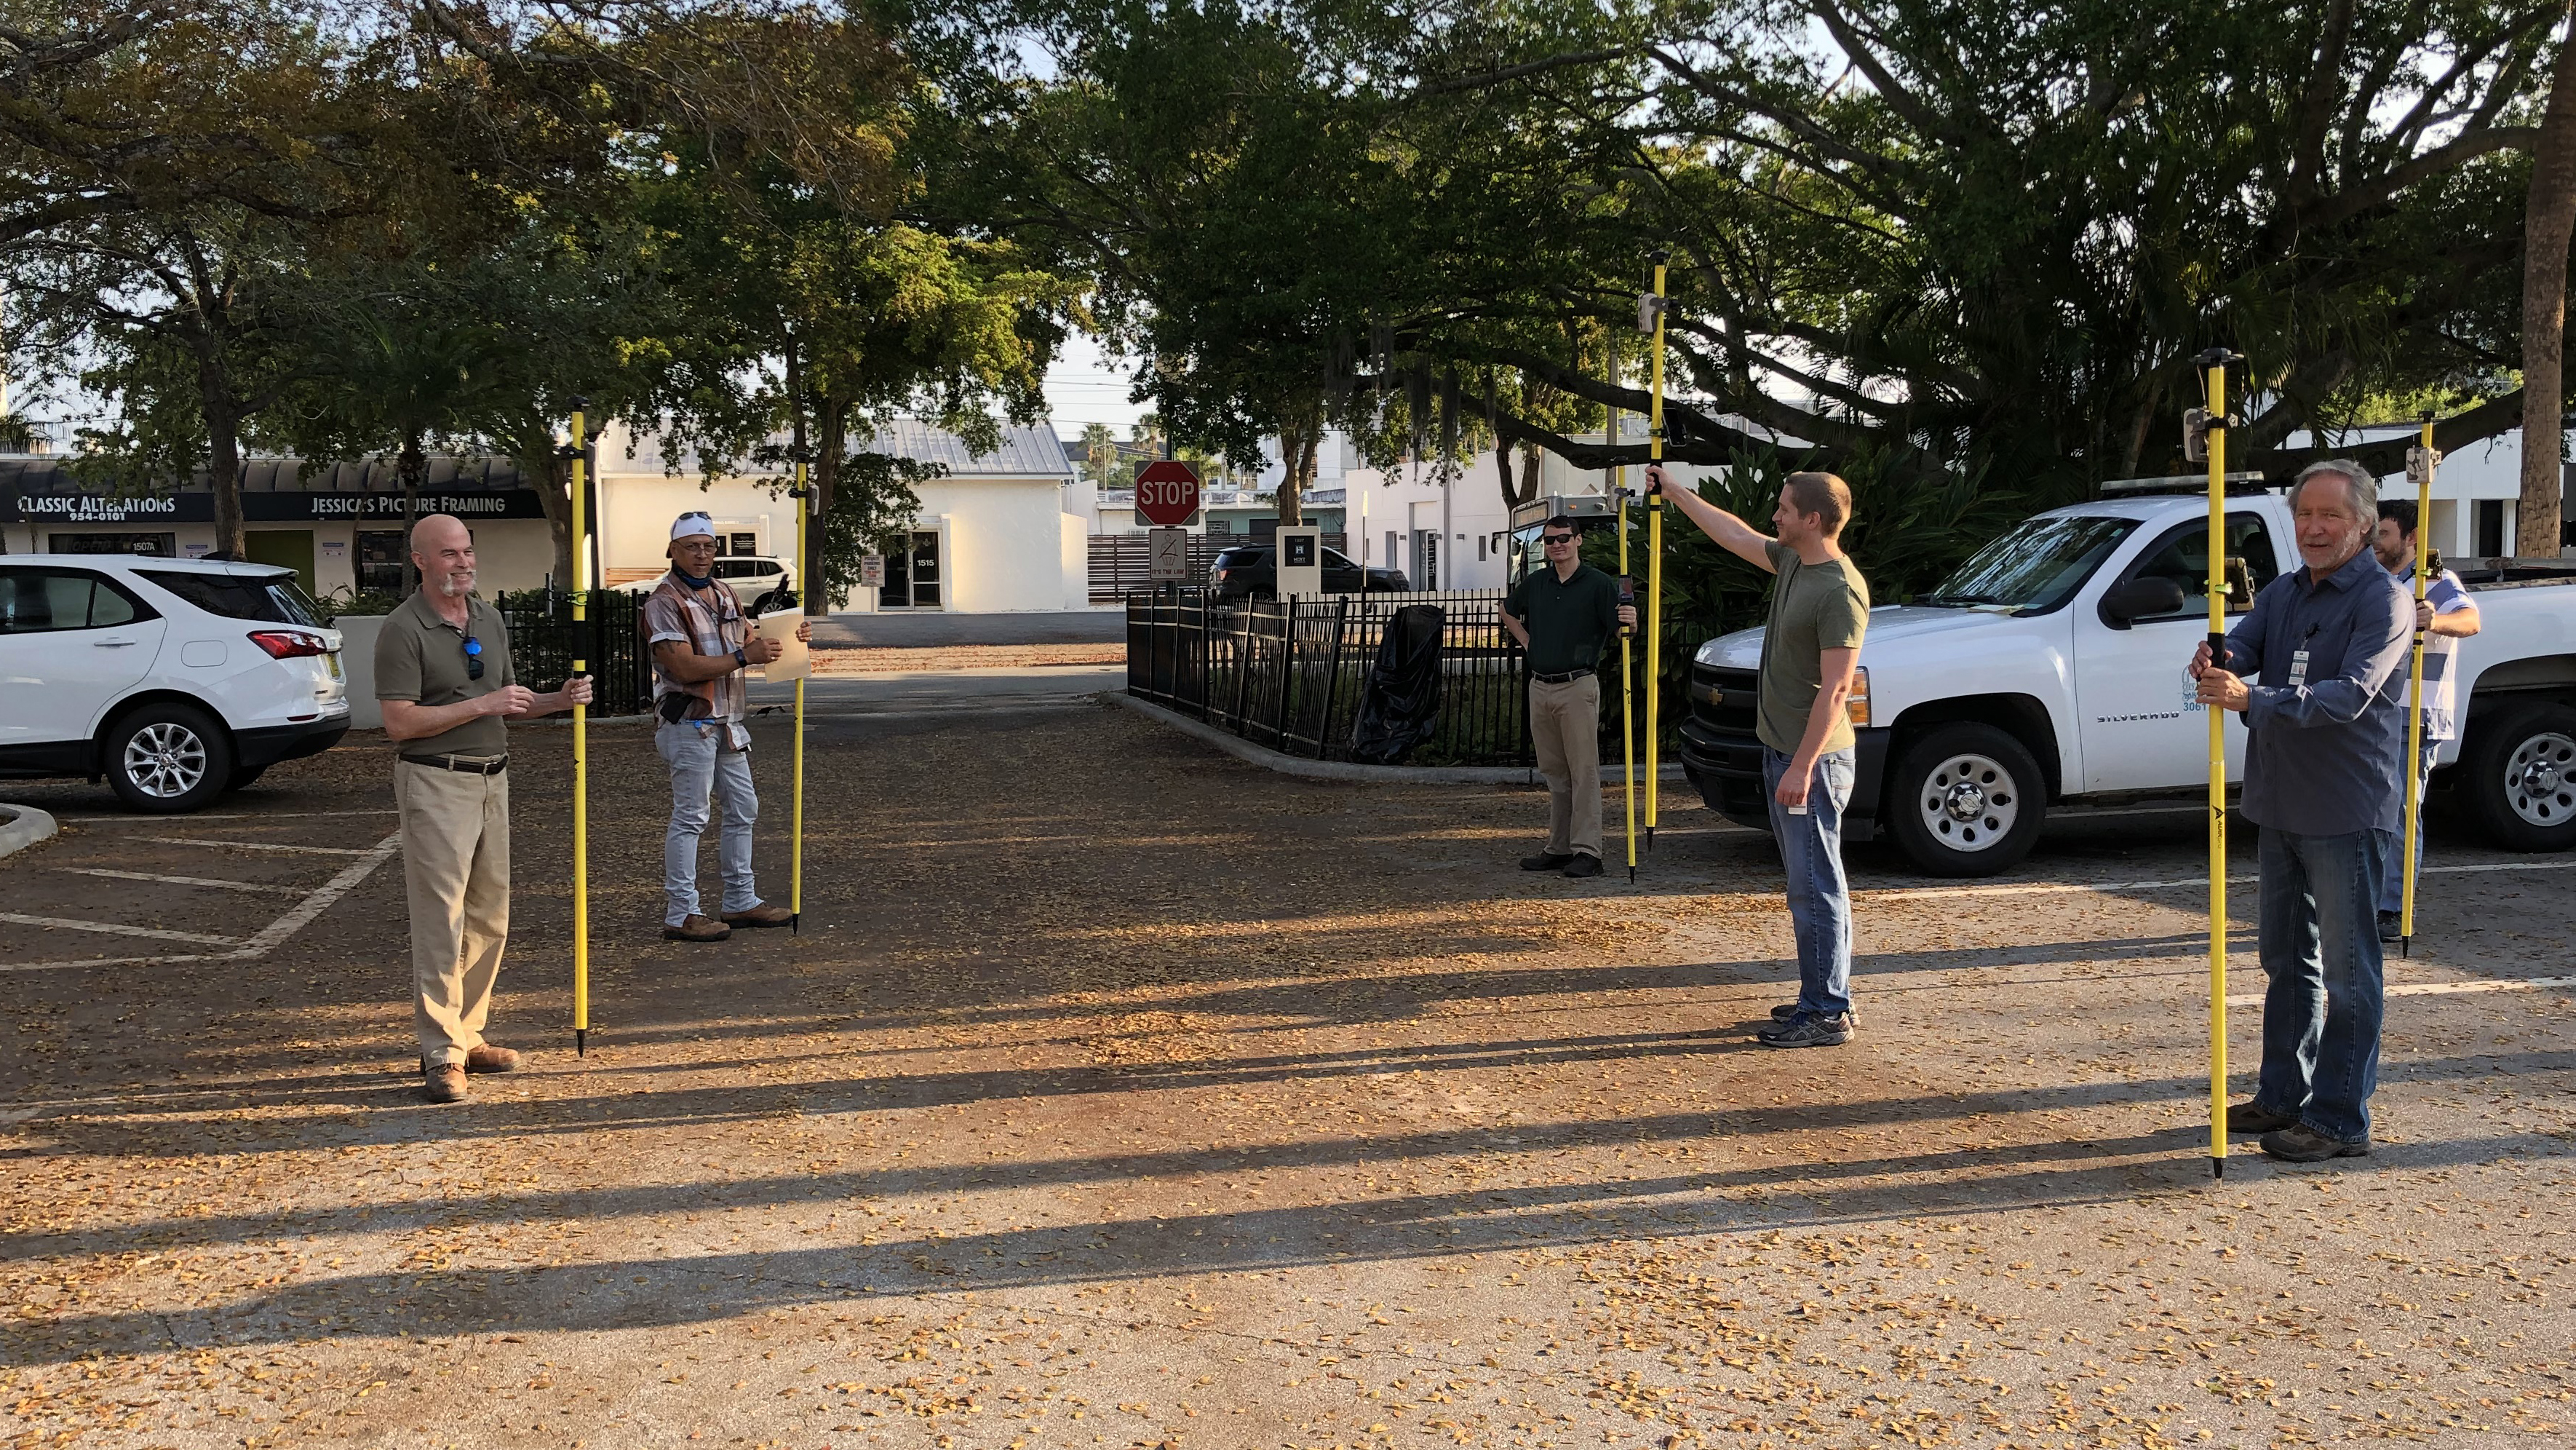 City of Sarasota non-GIS staff get trained in collecting high-accuracy data using Arrow 100 GNSS receivers and ArcGIS Collector during the COVID-19 pandemic